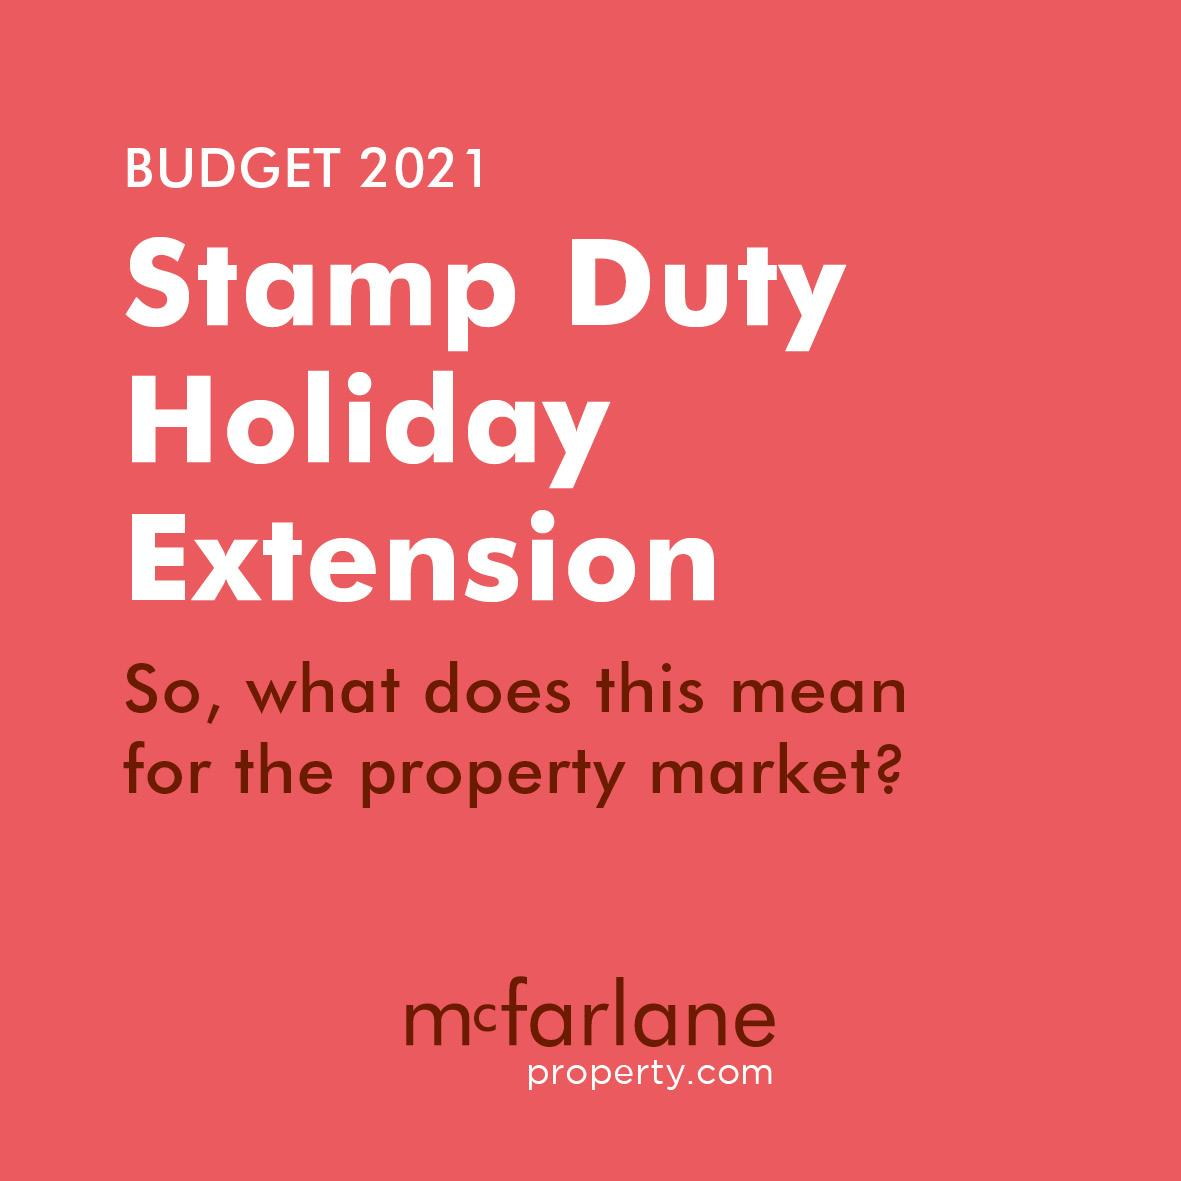 Budget 2021 - Stamp Duty extension until 30 June